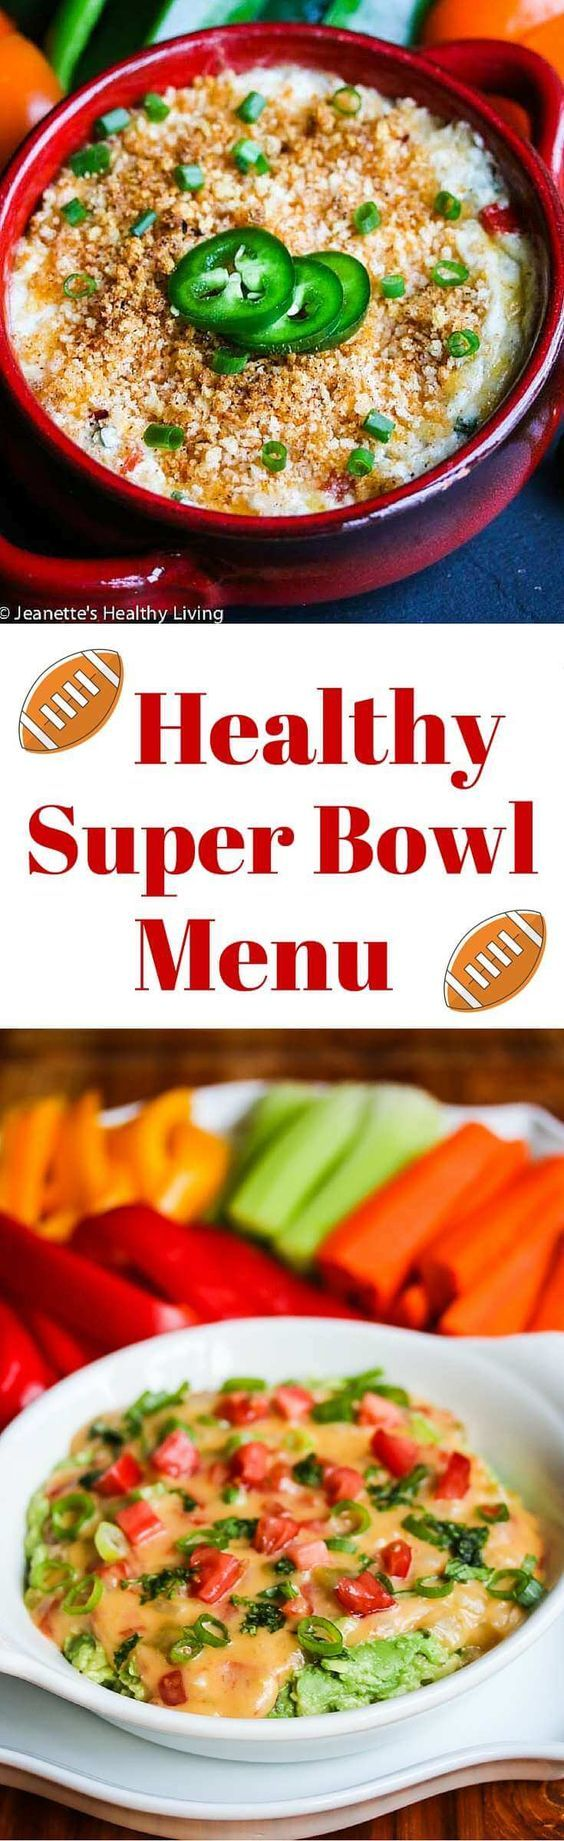 Healthy Super Bowl Menu - celebrate Super Bowl with lighter versions of party favorite foods ~ http://jeanetteshealthyliving.com